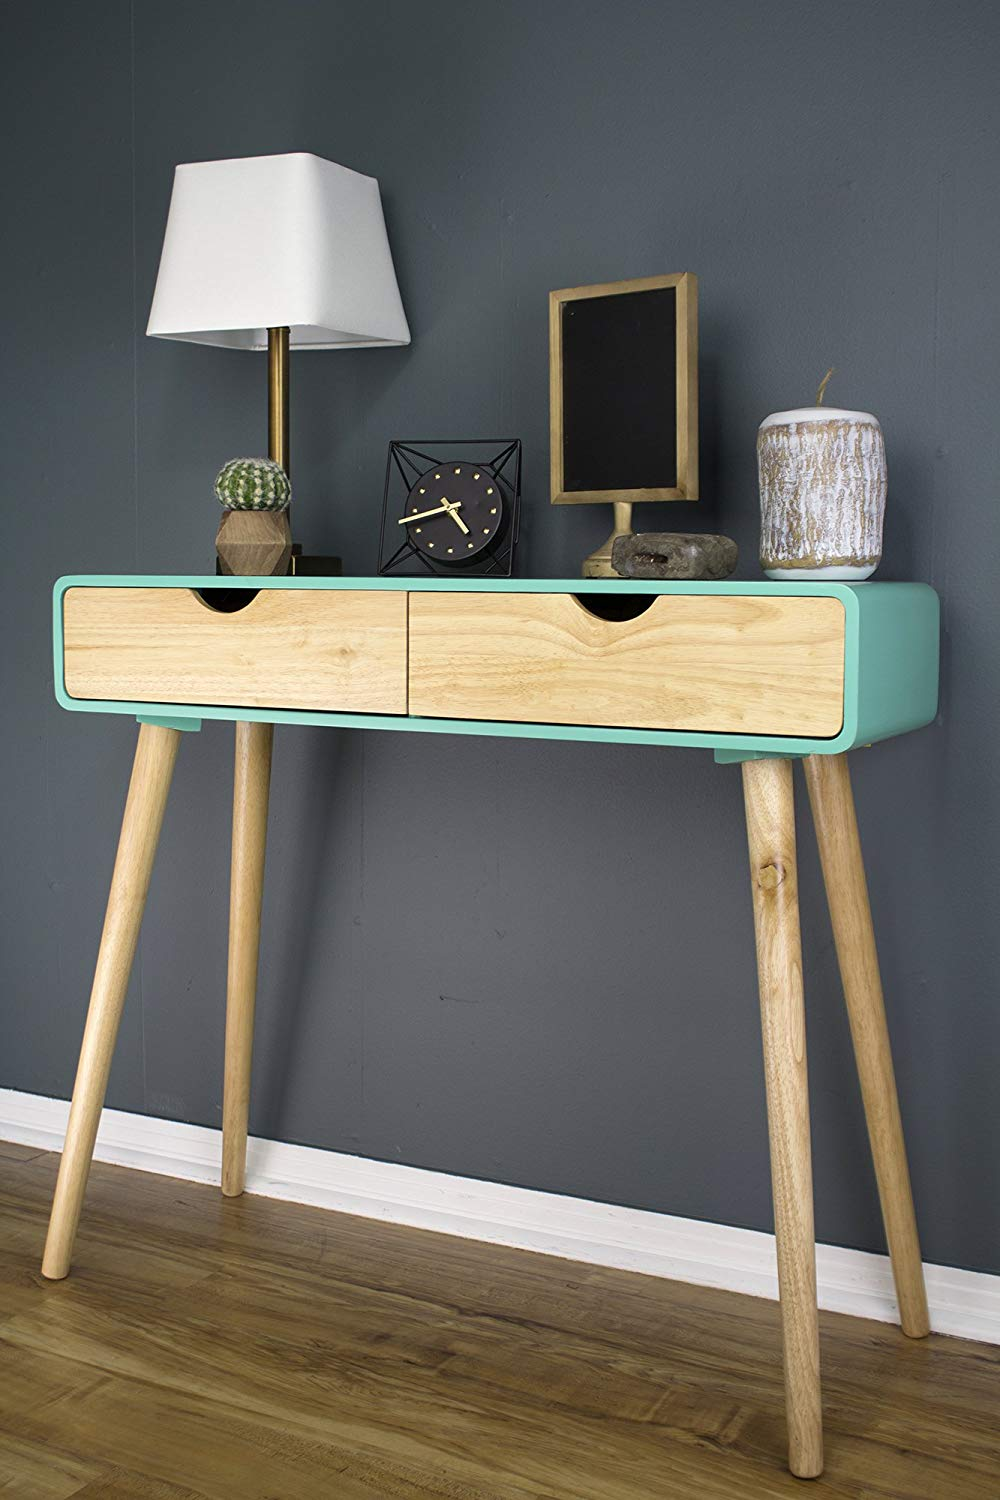 aqua-blue-and-natural-wood-mid-century-modern-console-table-with-drawers